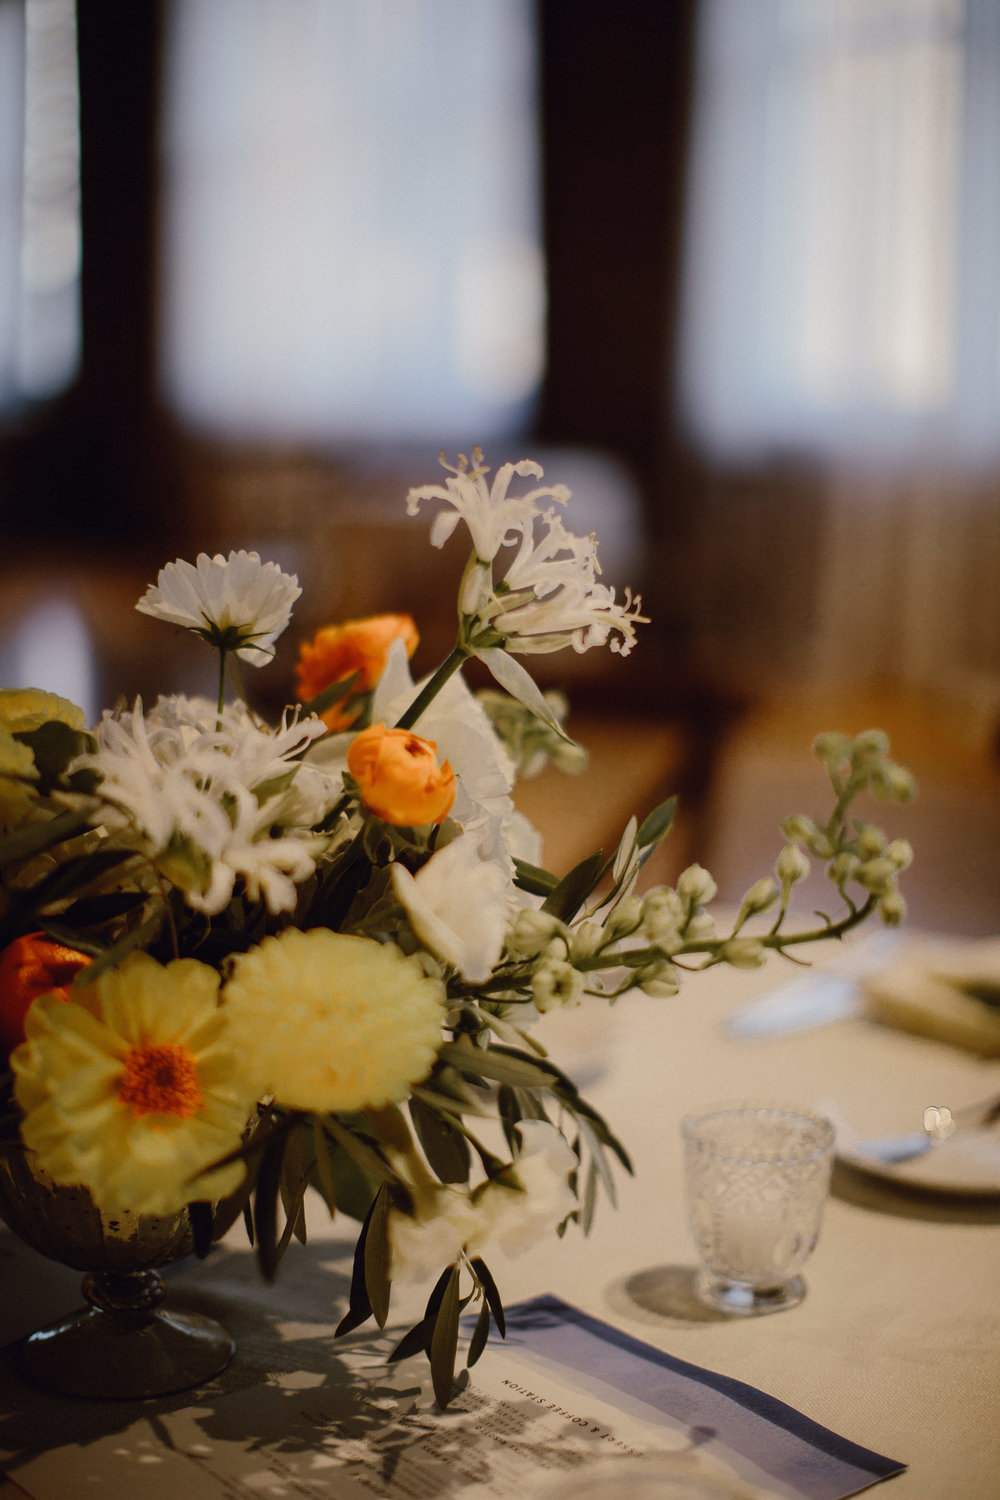 Fleur-Inc-Bridgeport-Art-Center-Sculpture-Garden-Wedding-Estera-Events-Megan-Saul-Photography-September-Flowers-yellow-orange-centerpiece